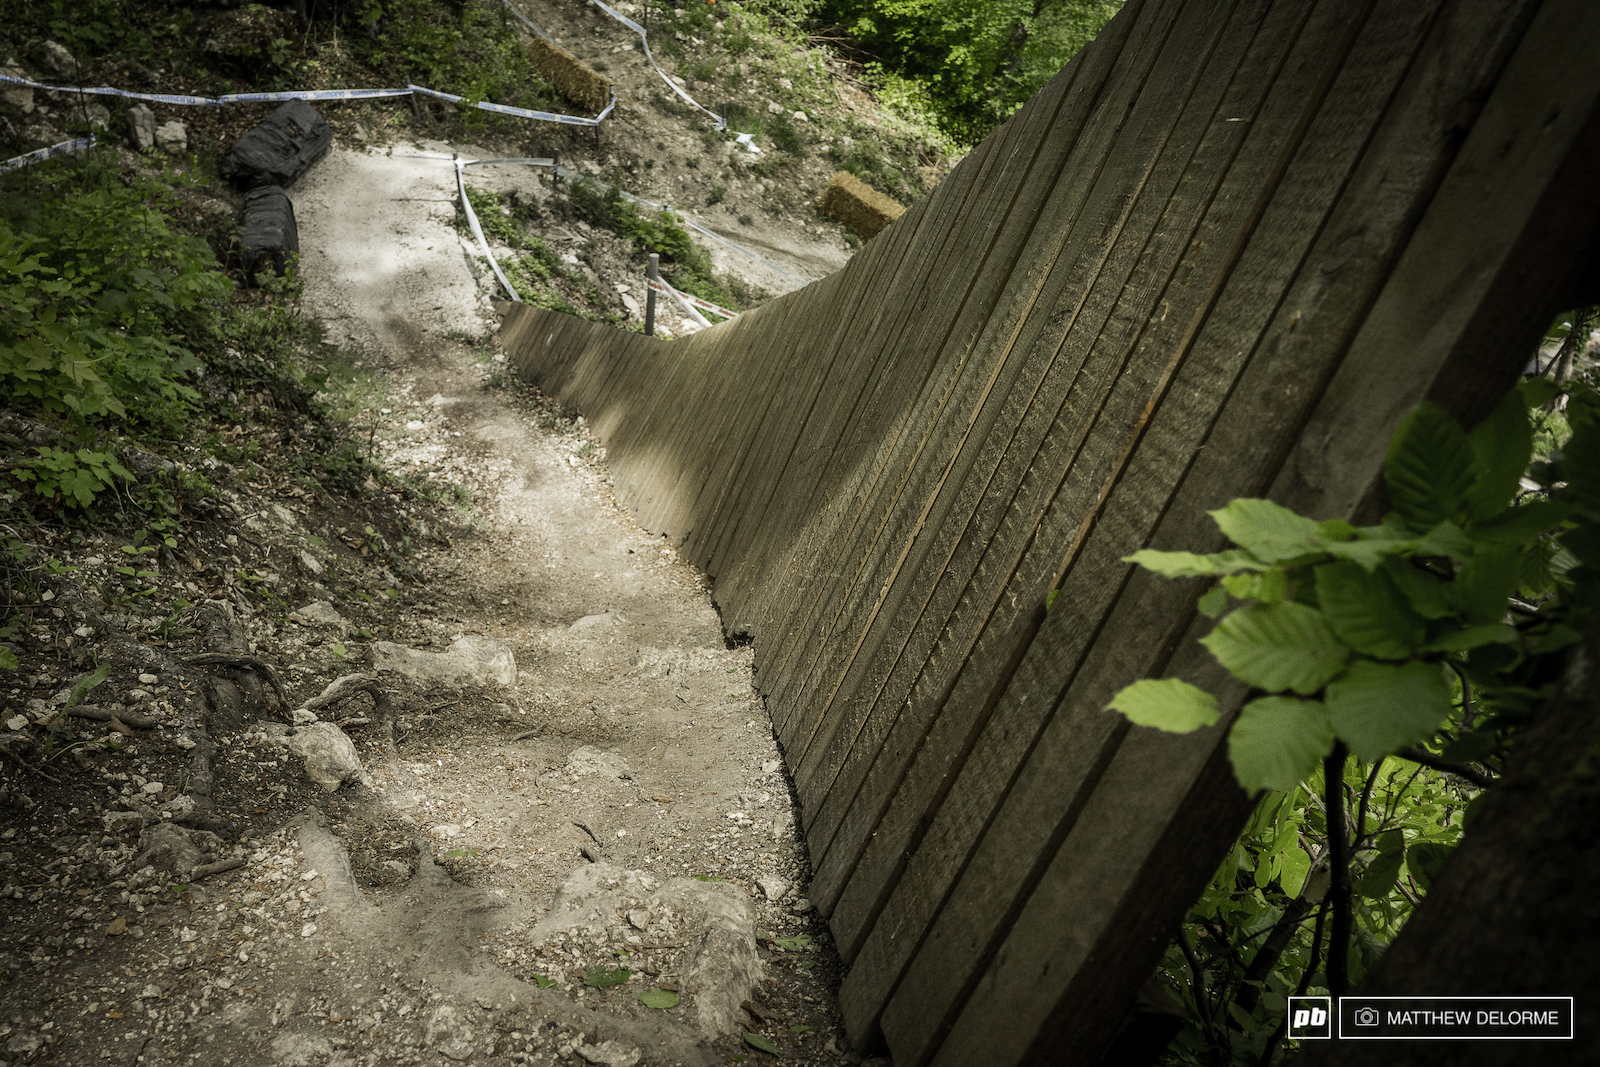 The wall will keep riders from blasting down a mini cliff but it may also claim some skin.